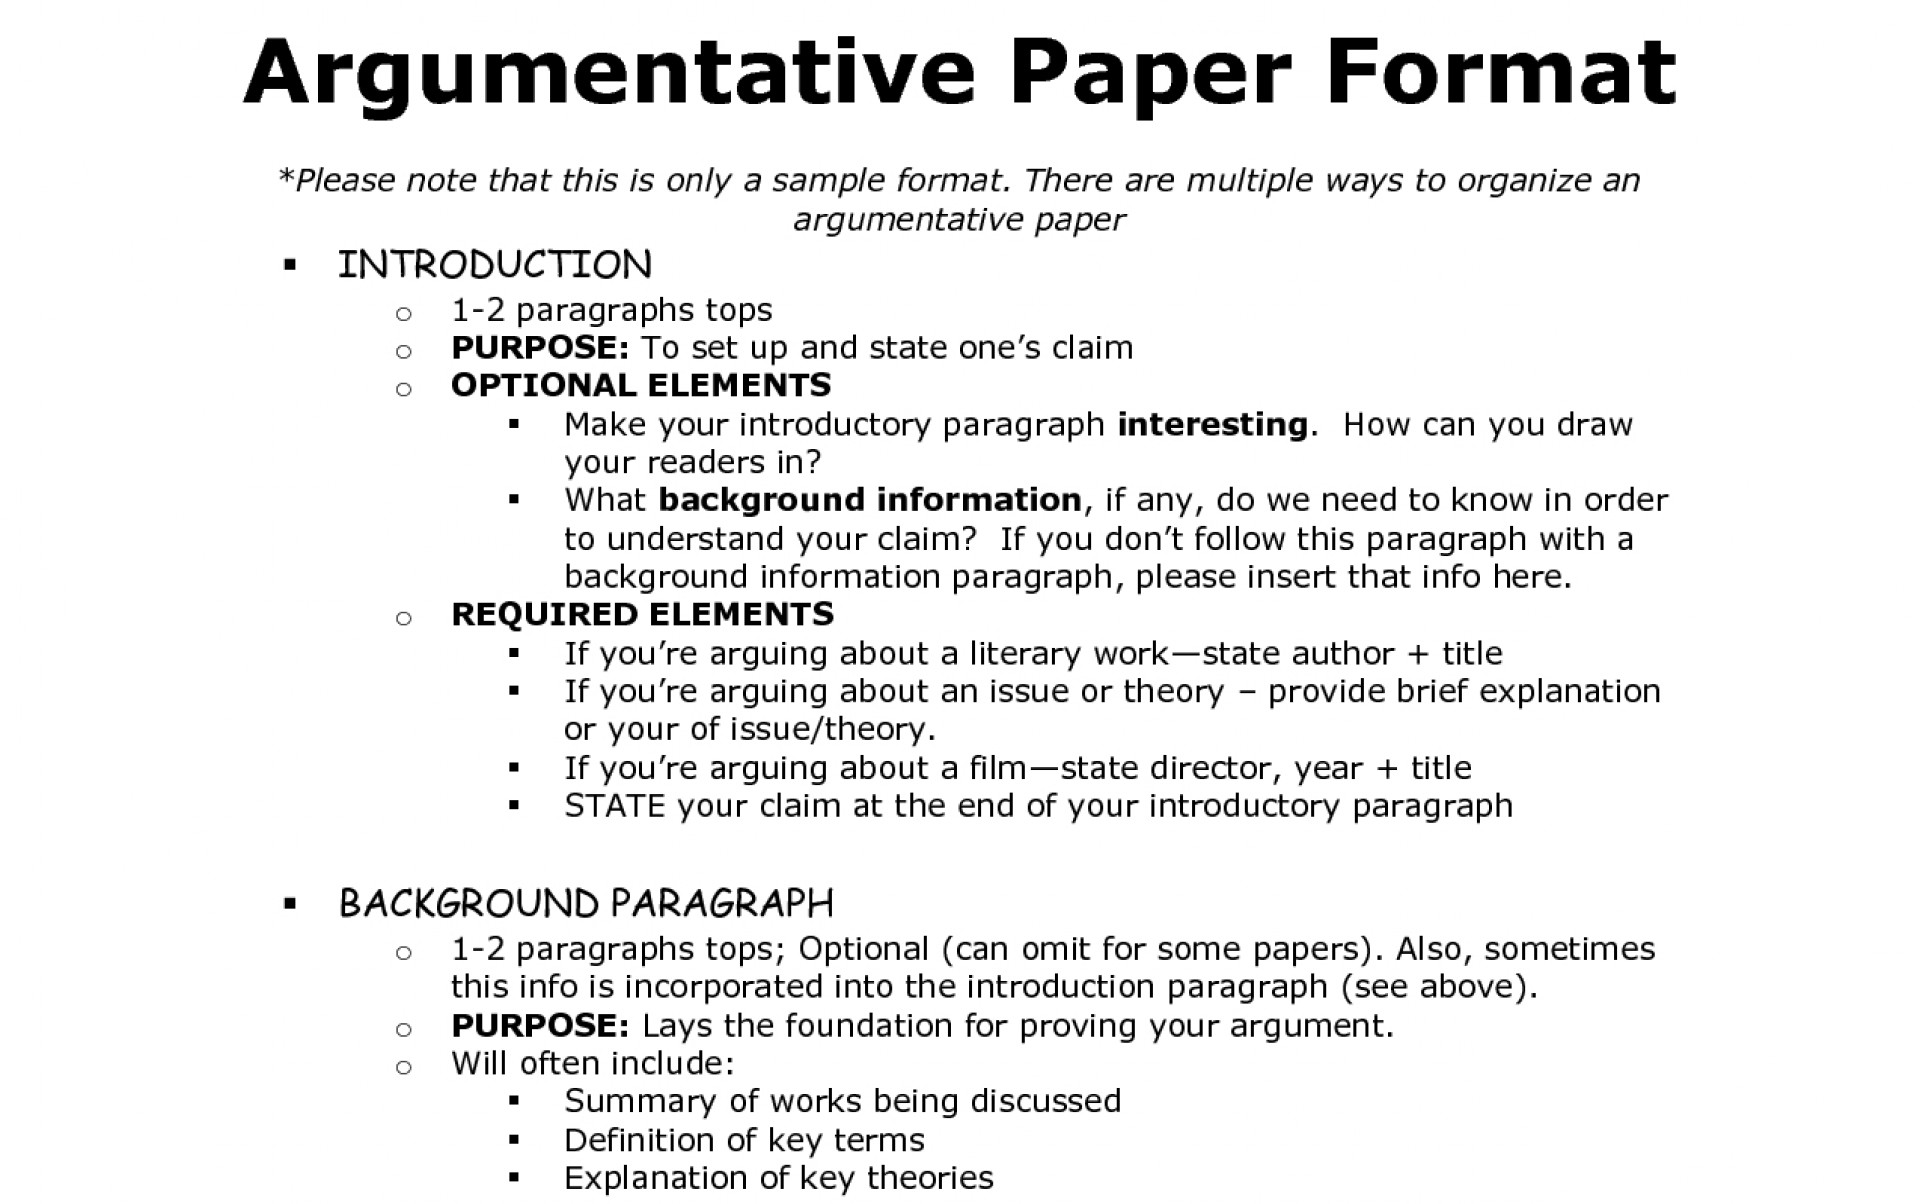 010 How To Conclude An Argumentative Essay Example Conclusion Printables Corner Paragraph Examples For World Of I Write Top Teach Writing A Closing Step By Ppt Middle School 1920